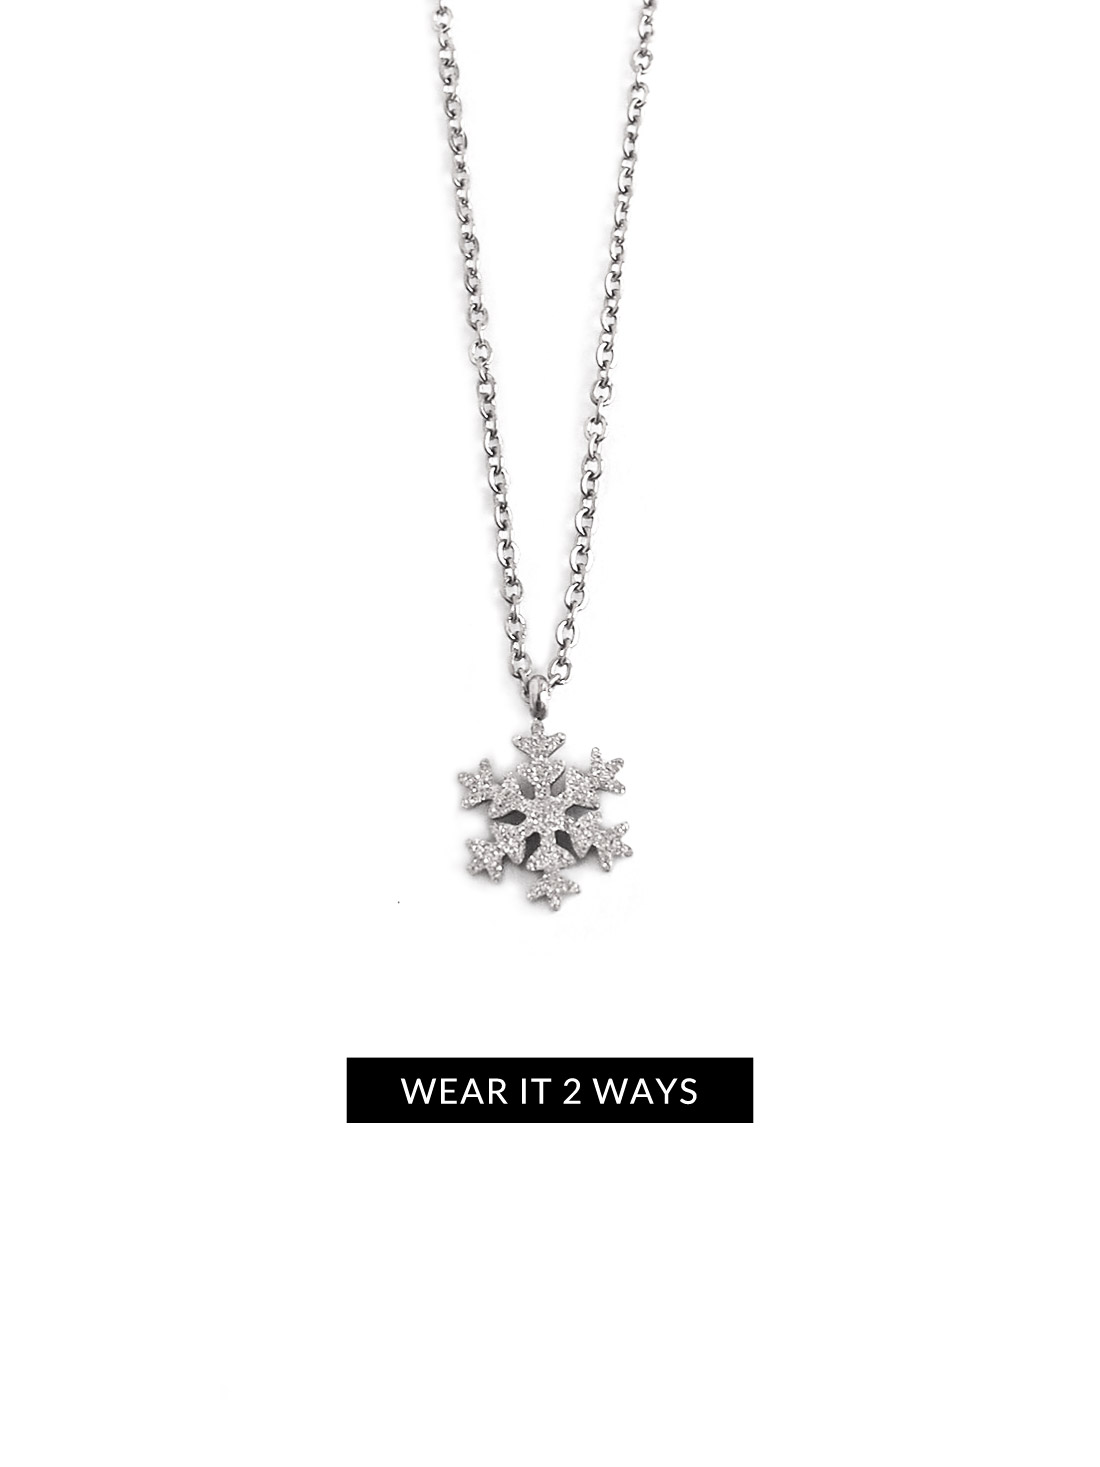 jools buyjools necklace johnlewis pdp at main zirconia pendant online snowflake jenny silver rsp cubic by brown com